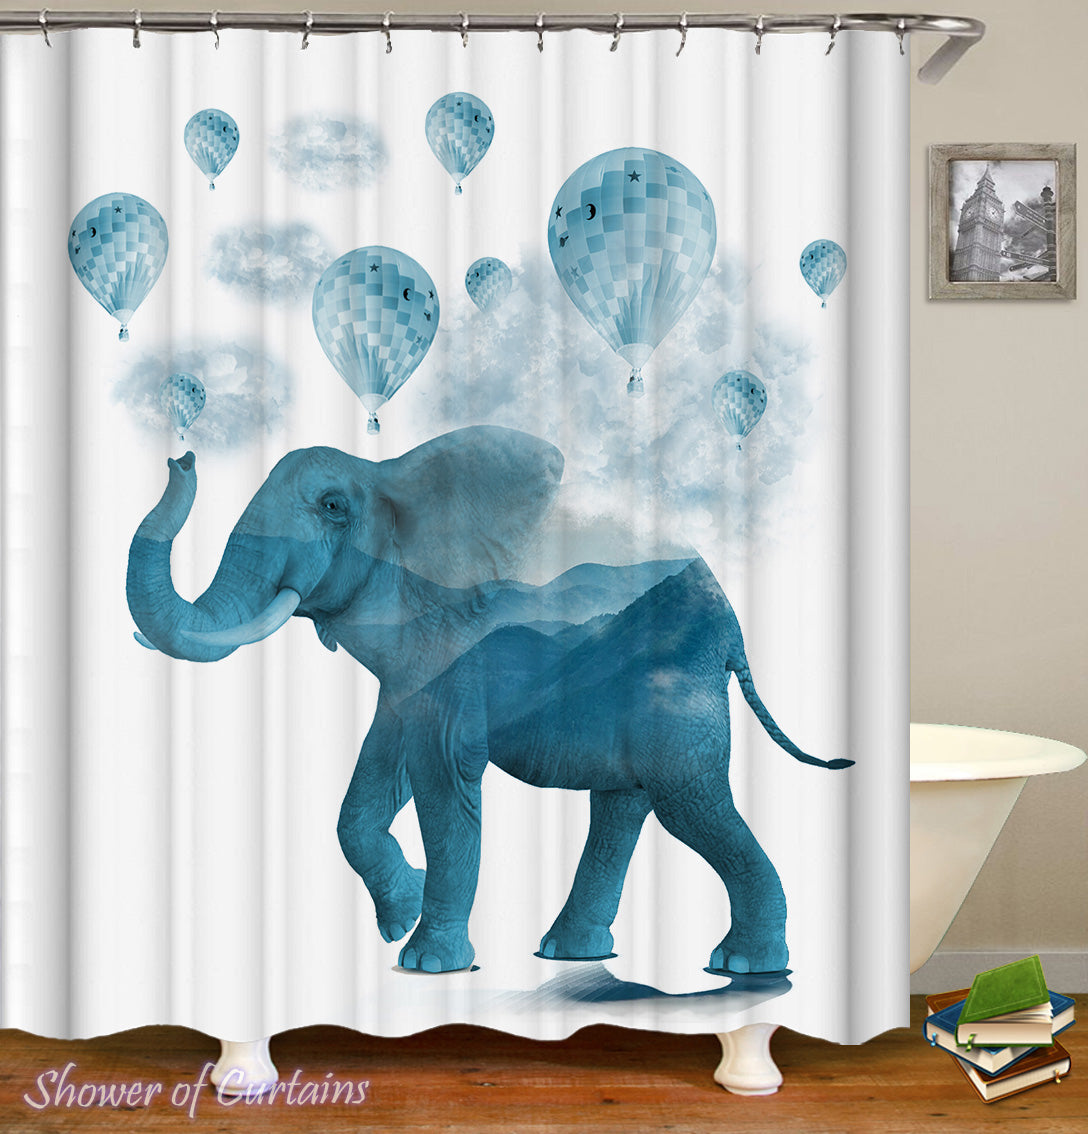 Delicieux Elephant Bathroom Decor Of Blue Hot Air Balloons And Elephant Shower Curtain